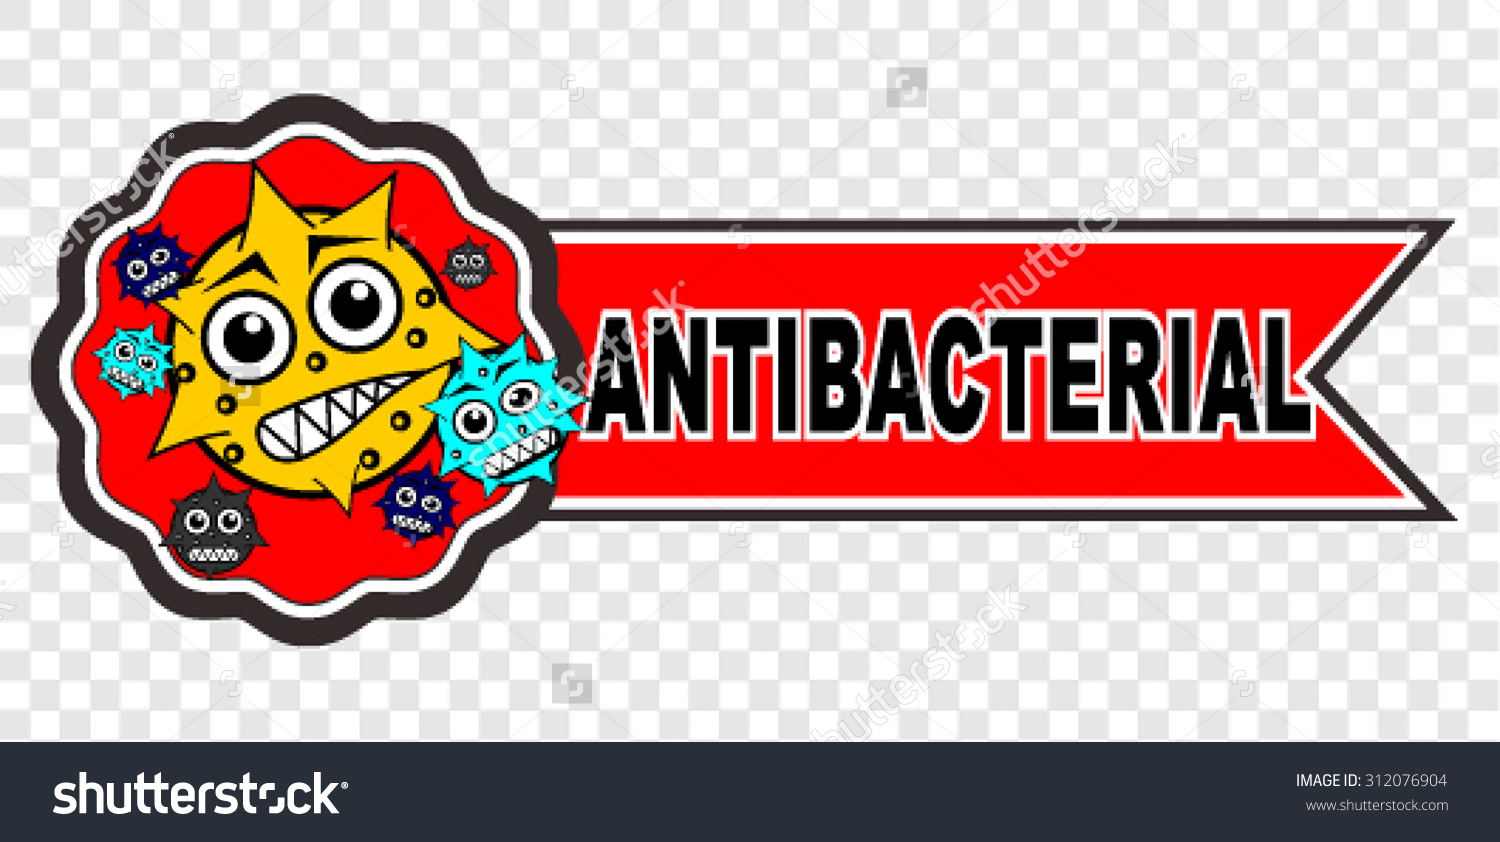 Antibacterial Vector Stock Vector 312076904.